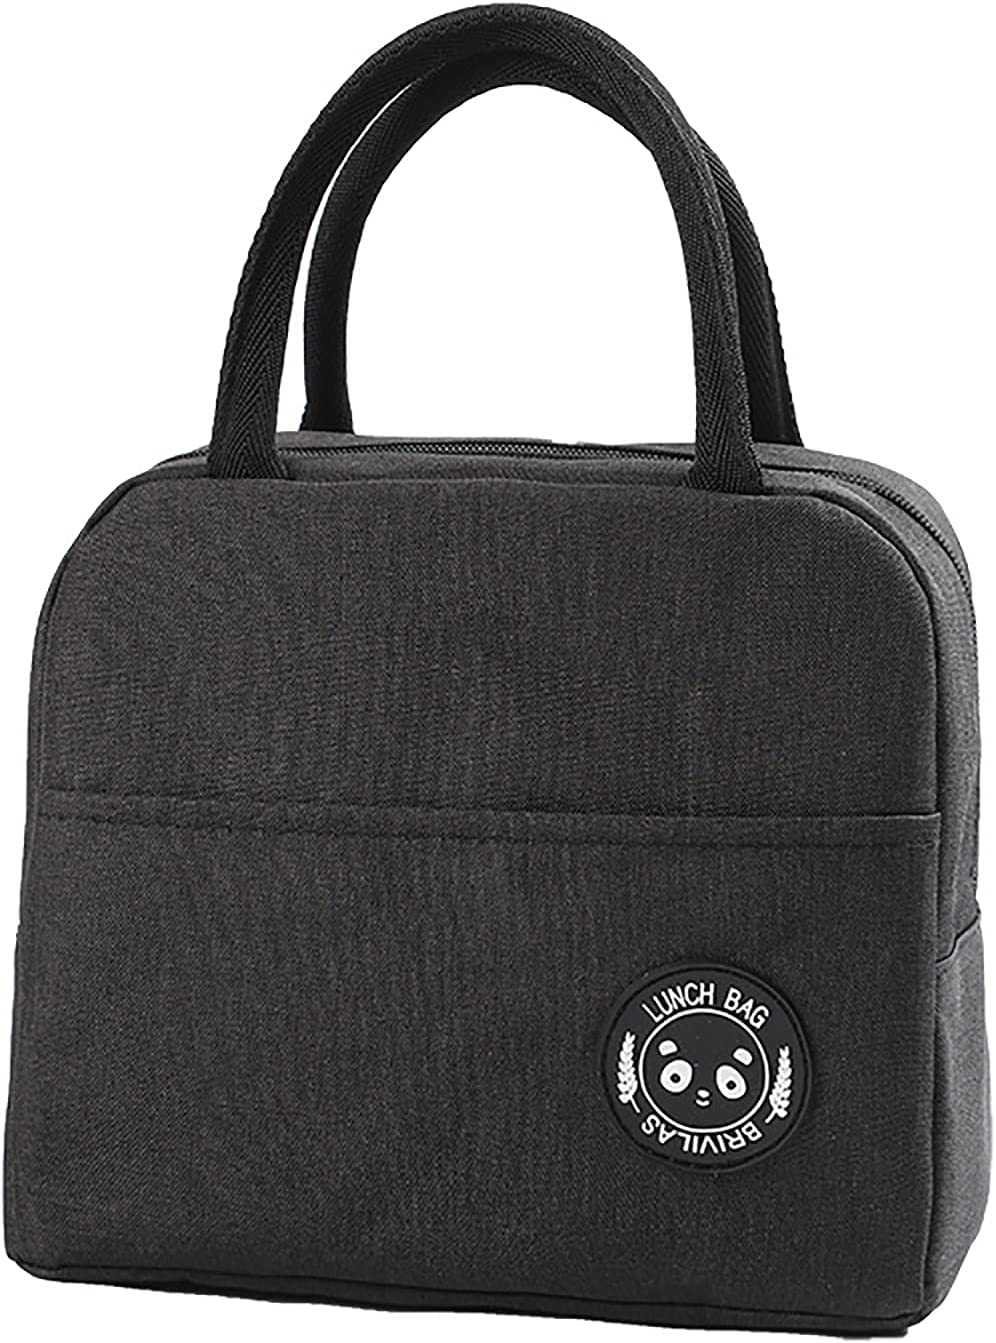 Chase Fans Reusable Lunch Bags for Women & Men,Tote Bag Insulated Lunch Container Oxford Fabric Aluminum Foil Lining,Lunch Box for Office,Work,Picnic,Beach (Black)